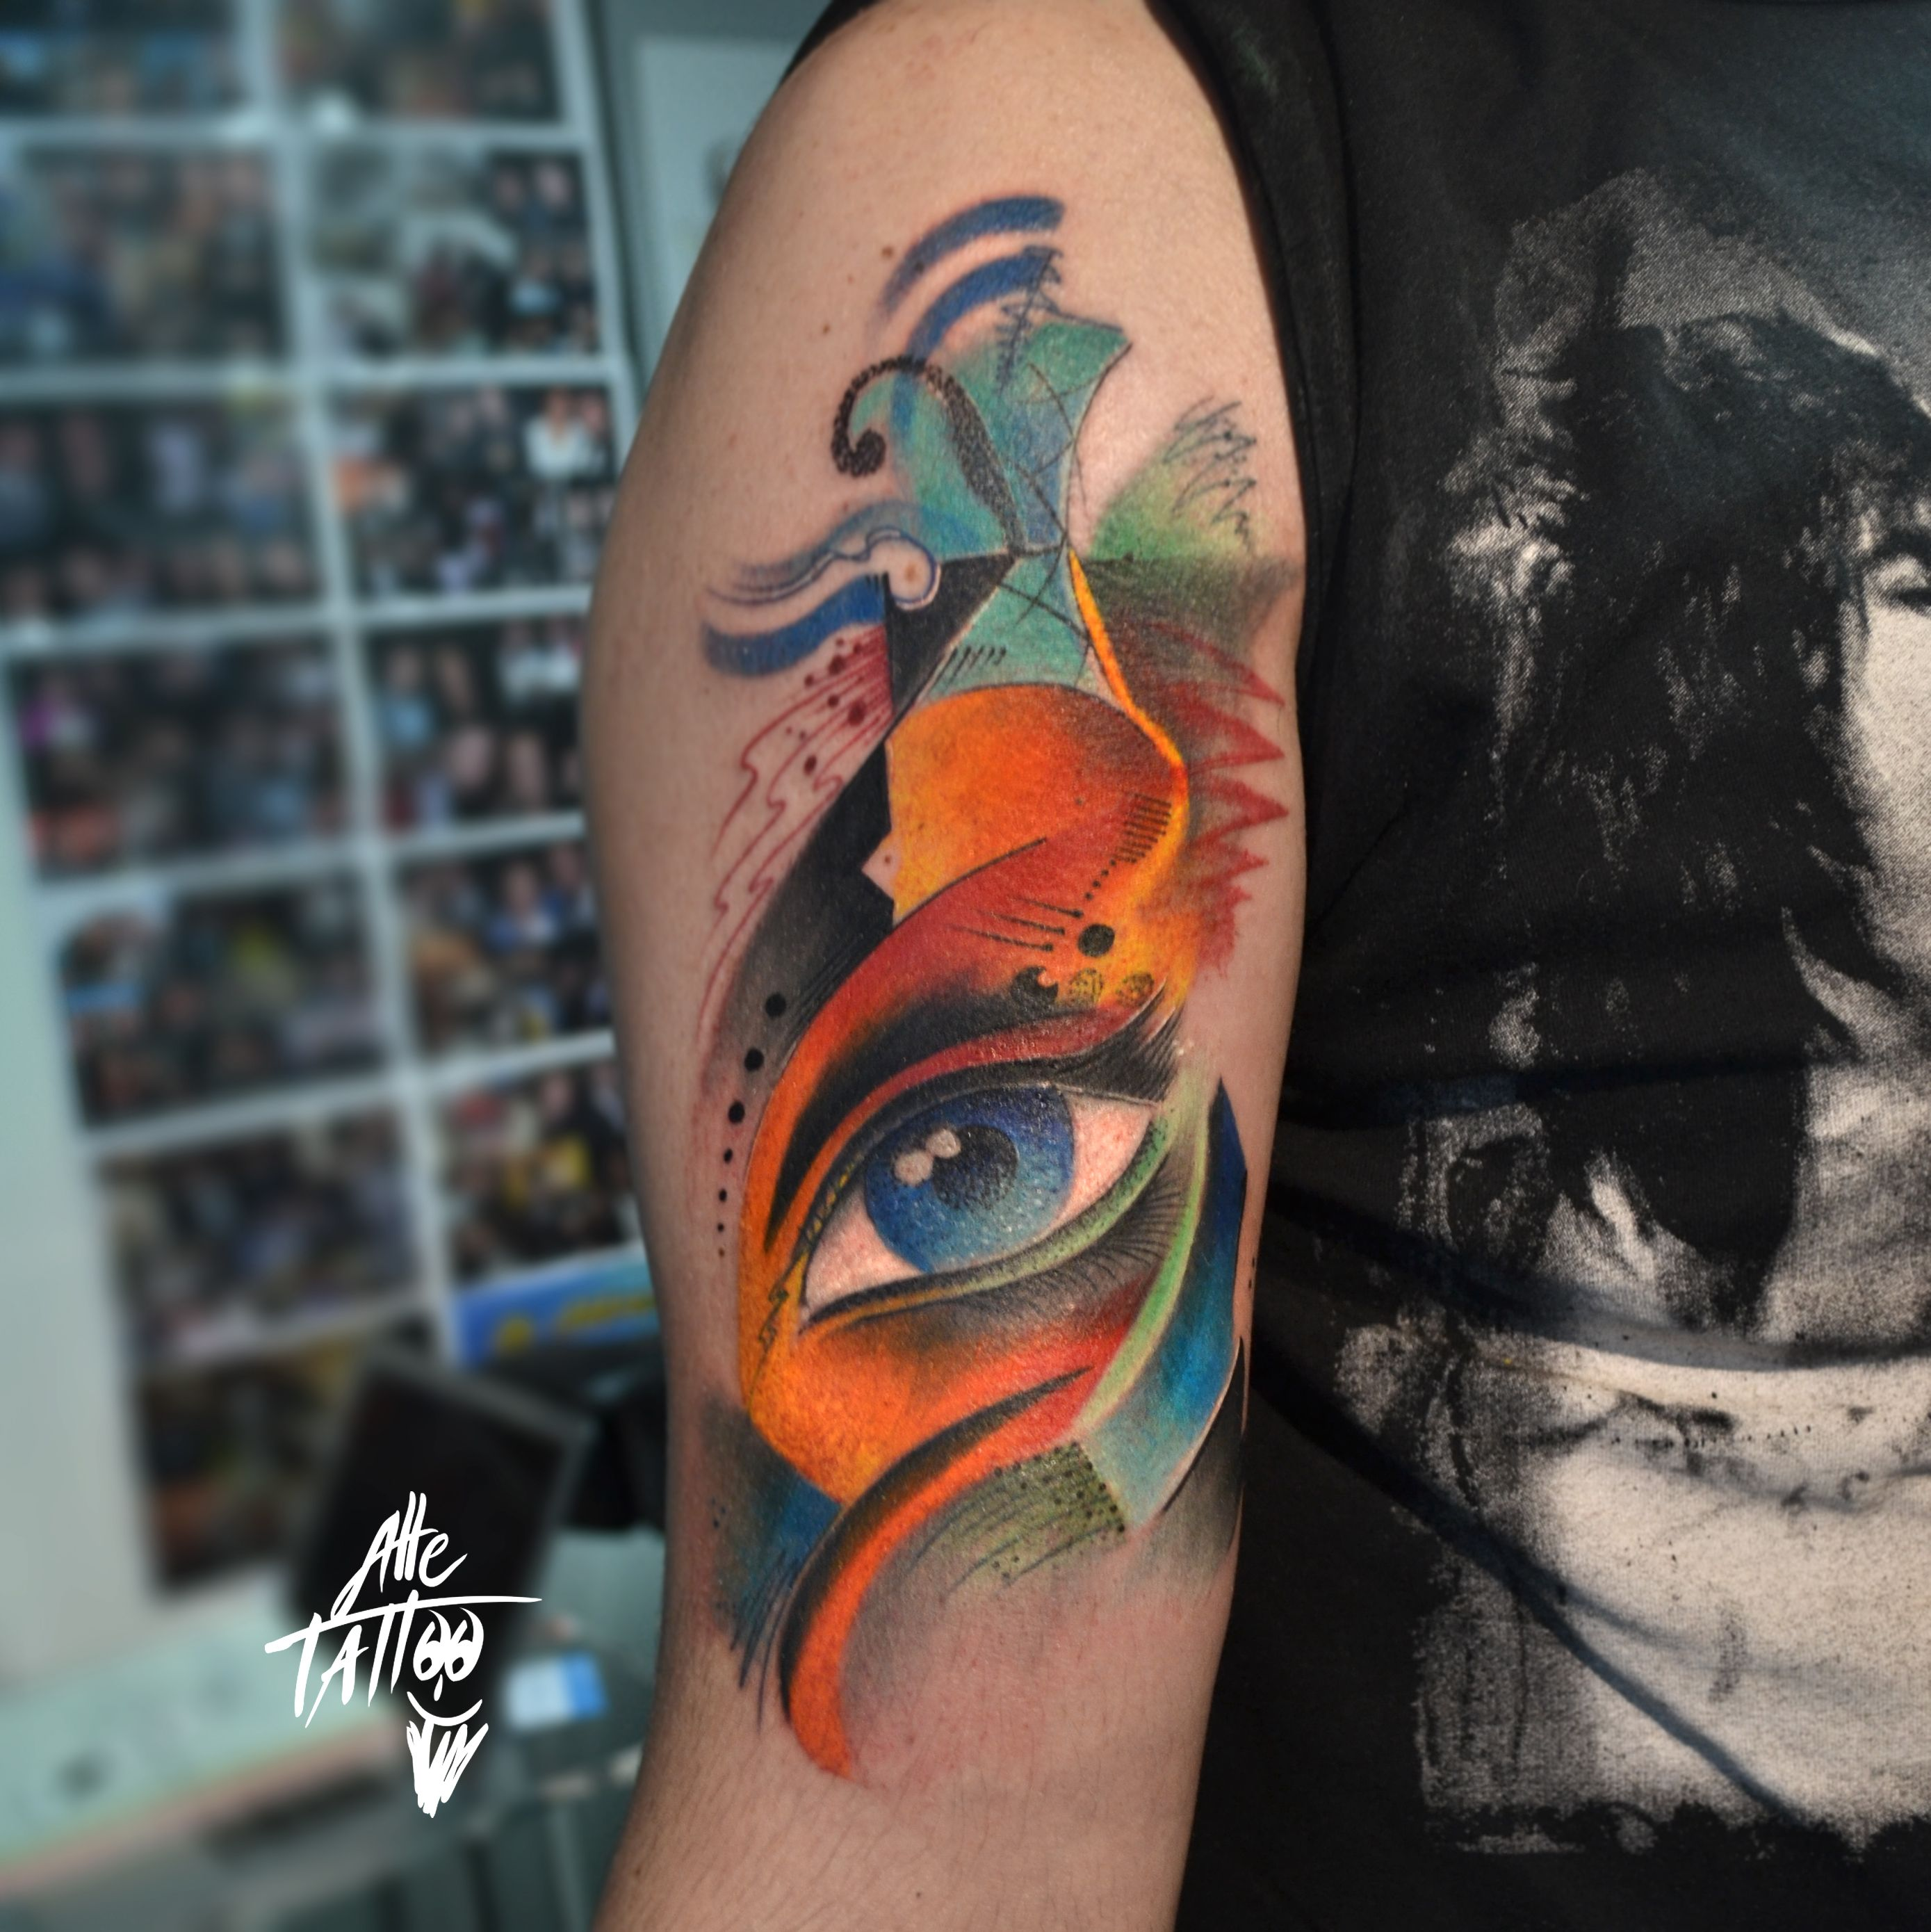 #occhio #avantgarde #tattoo #eye #tatuaggio #alletattoo #kandinksky #abstract #astratto